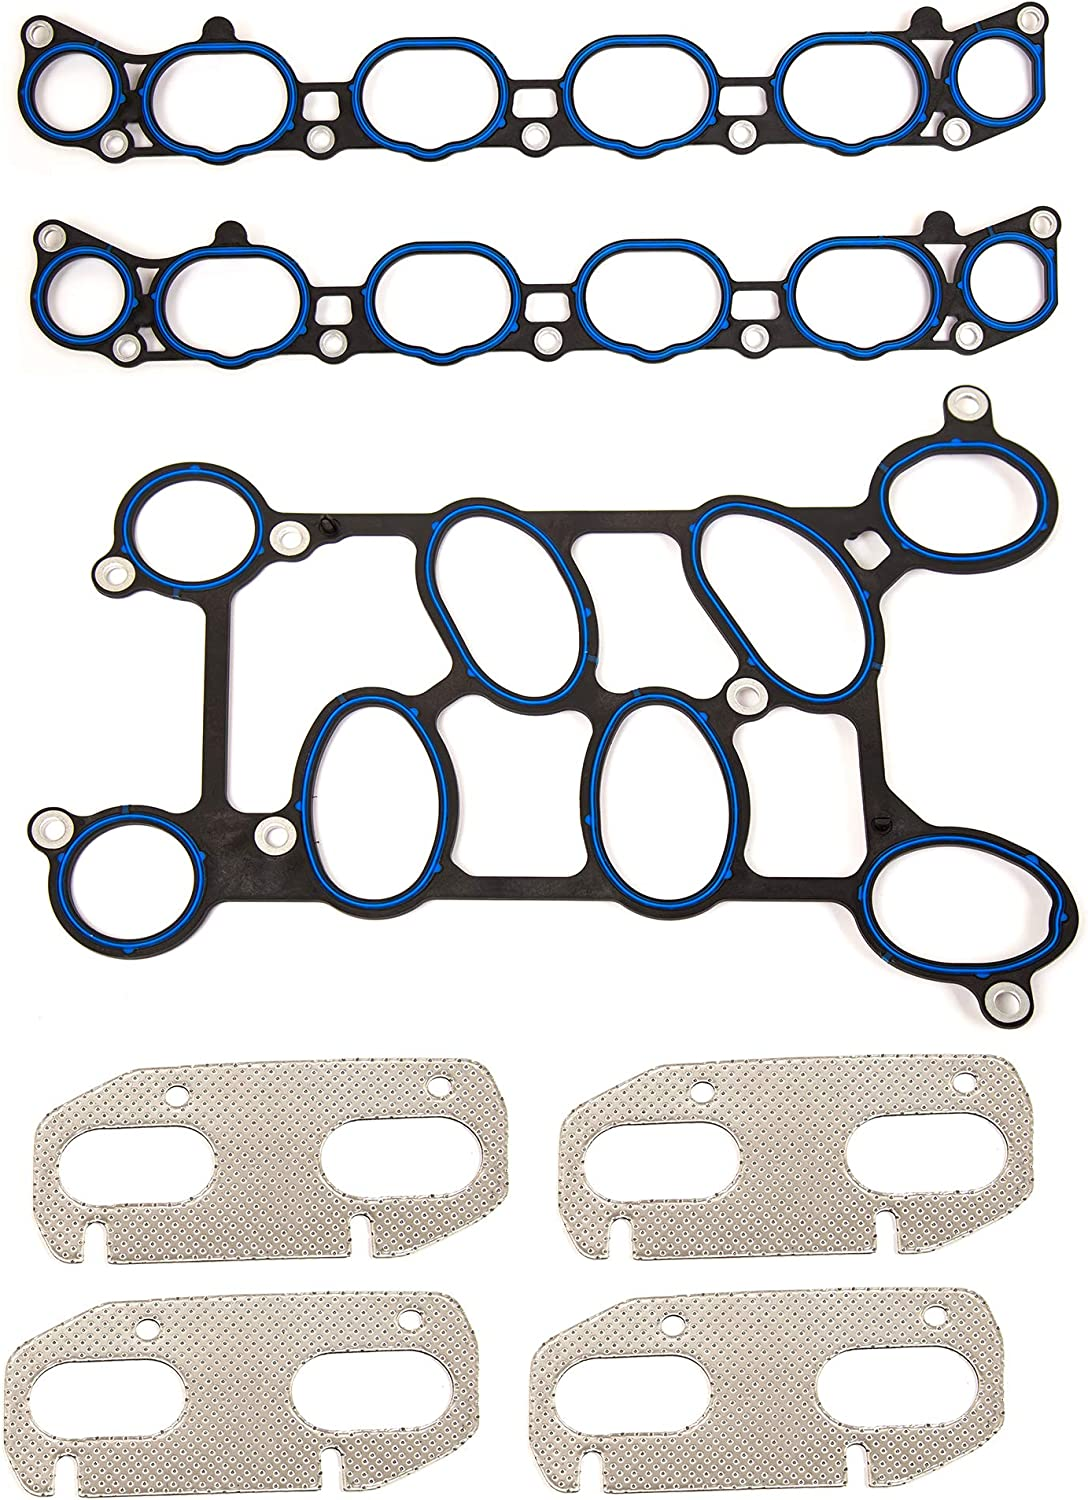 Evergreen HSHB8-21254 Head Gasket Set Head Bolts Fit 99-04 Lincoln Blackwood Navigator 5.4L V8 DOHC 32V